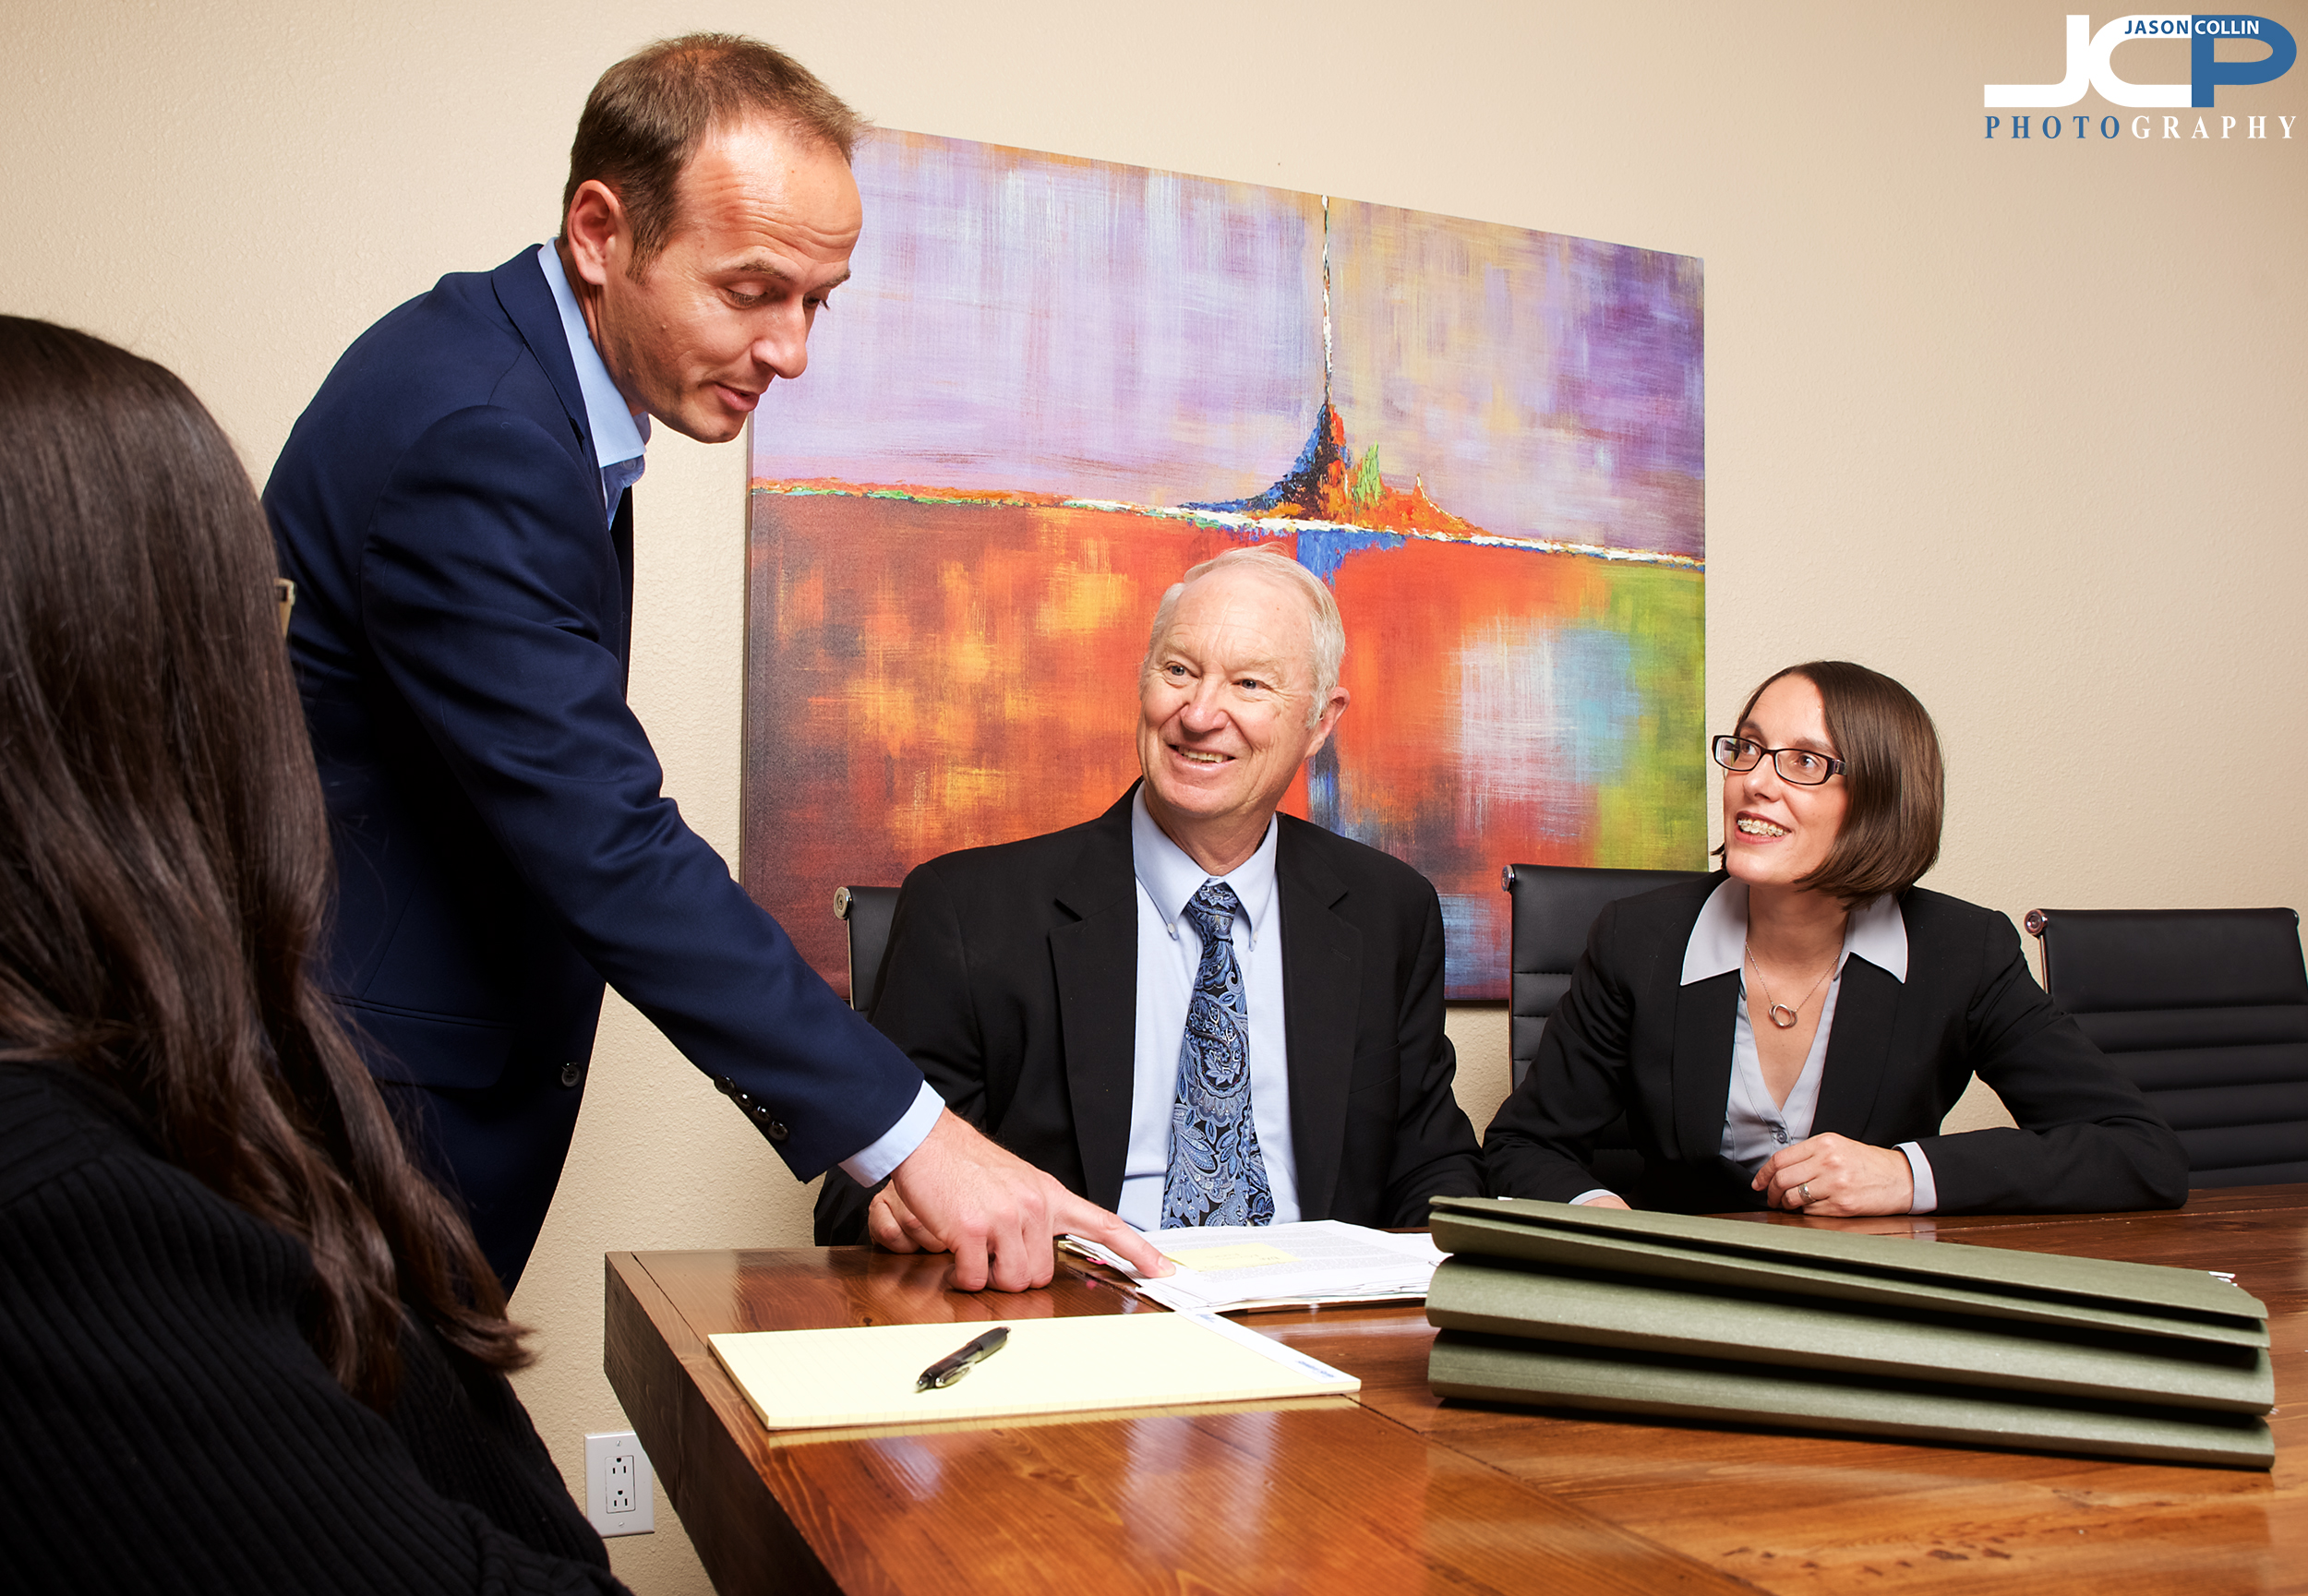 Better than stock photography, use your own staff and lawyers! - Albuquerque Commercial Photography